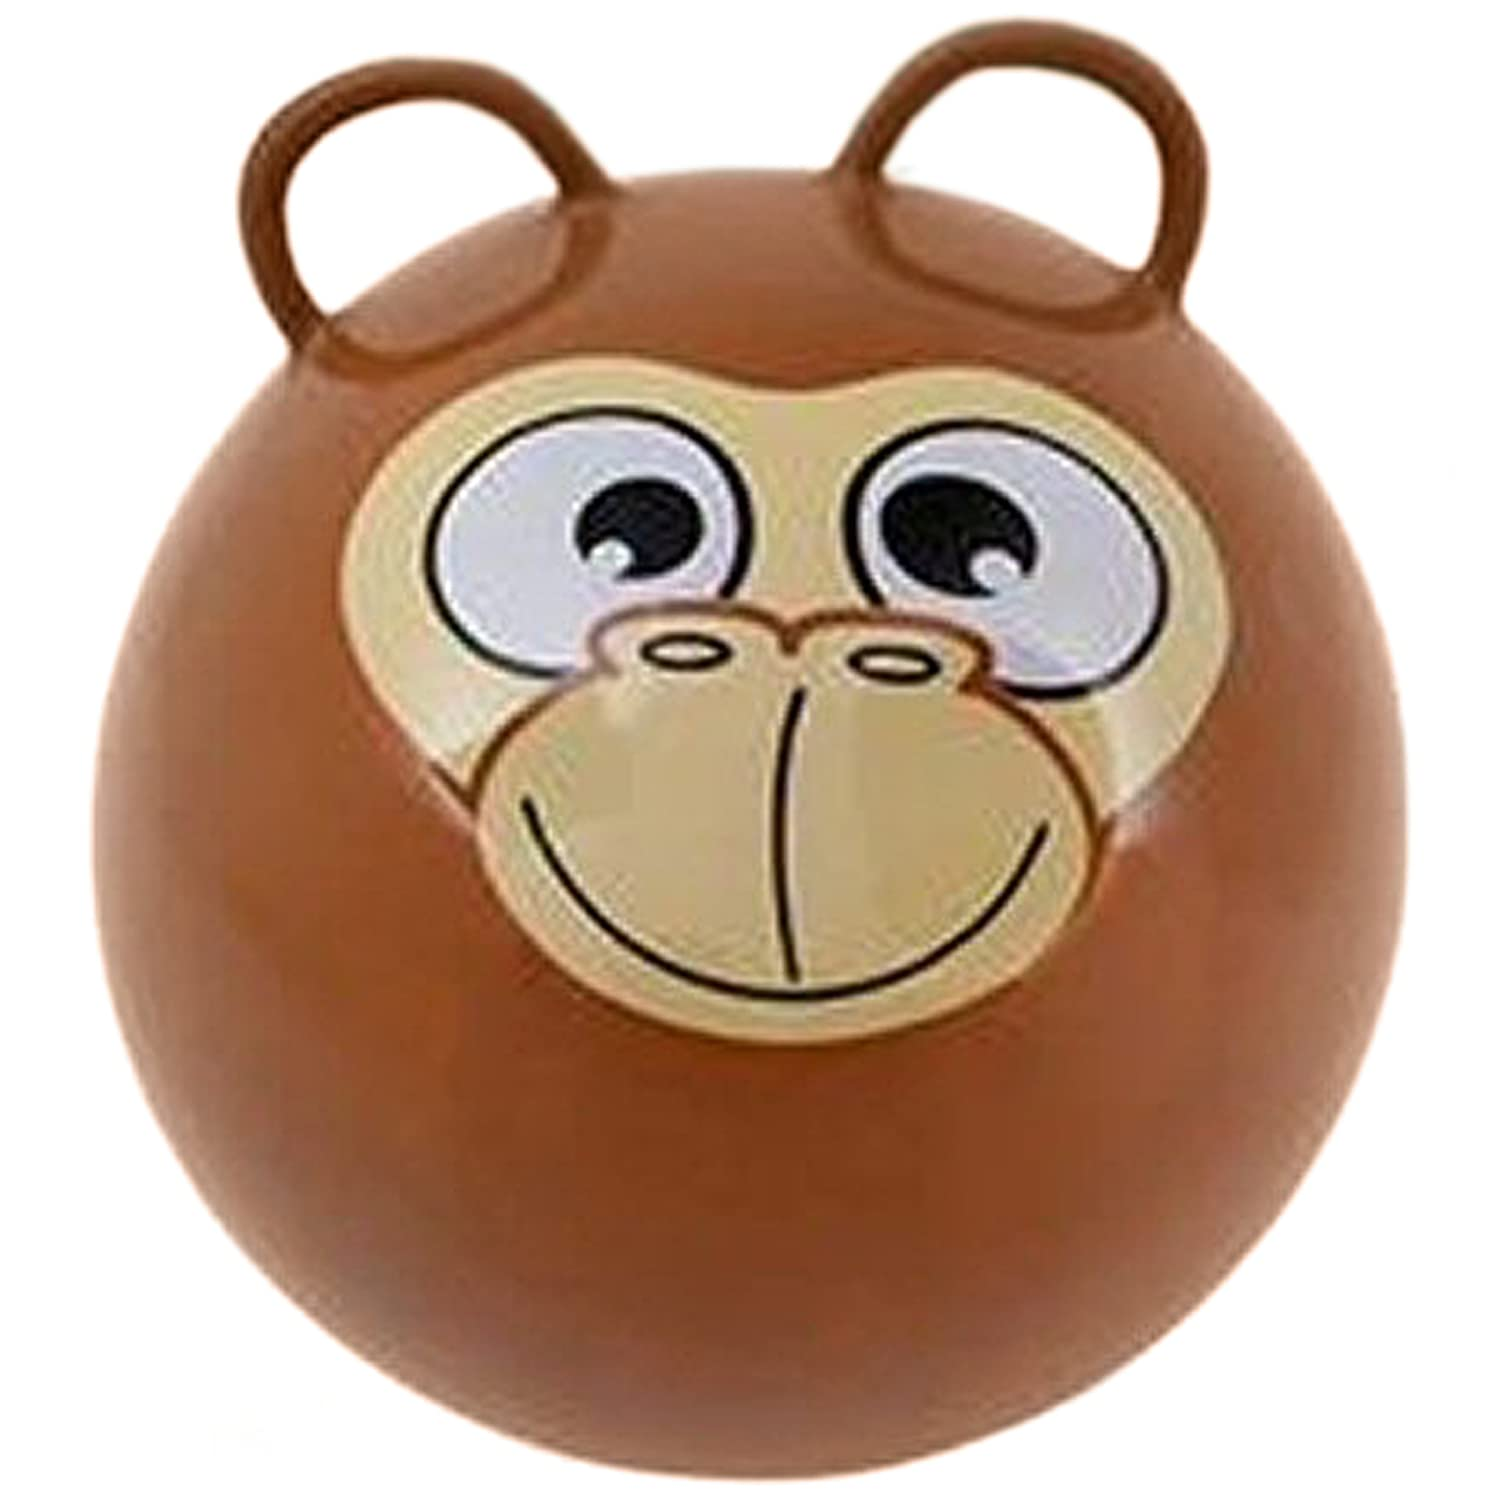 Hippity Hop Exercise Hopper Jump Balls with Animal Face and Two Handles for Kids